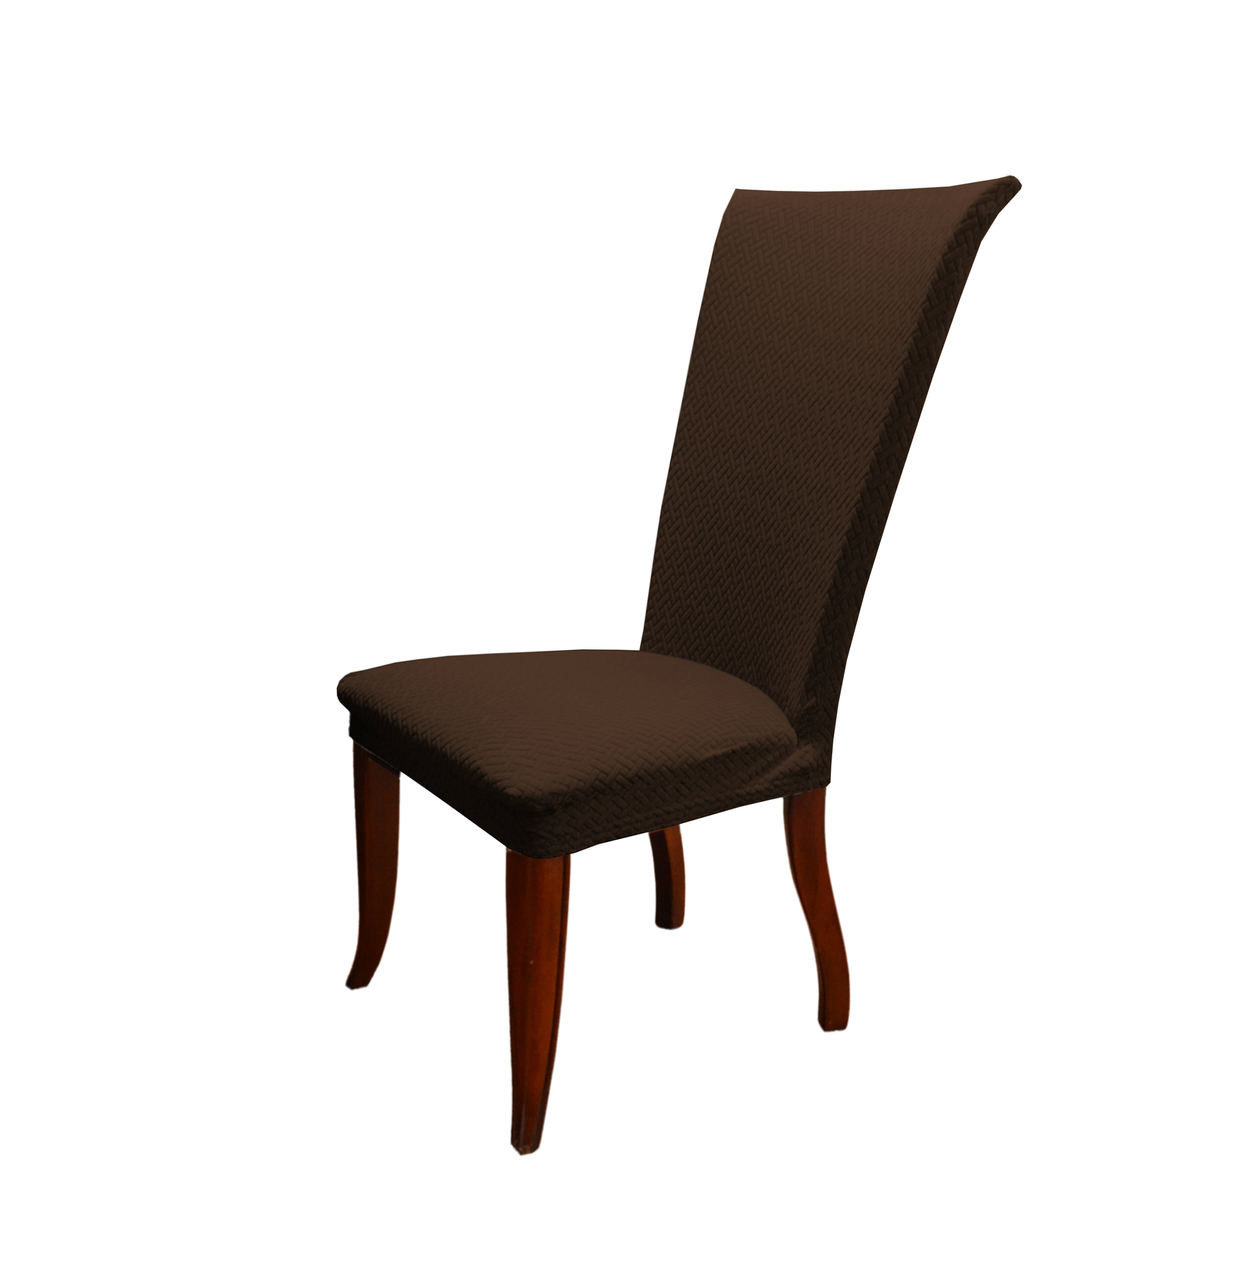 dining chair covers in store metal glides for carpet linen basket weave texture cover stretch form fitting fabric parson slipcover brown walmart com